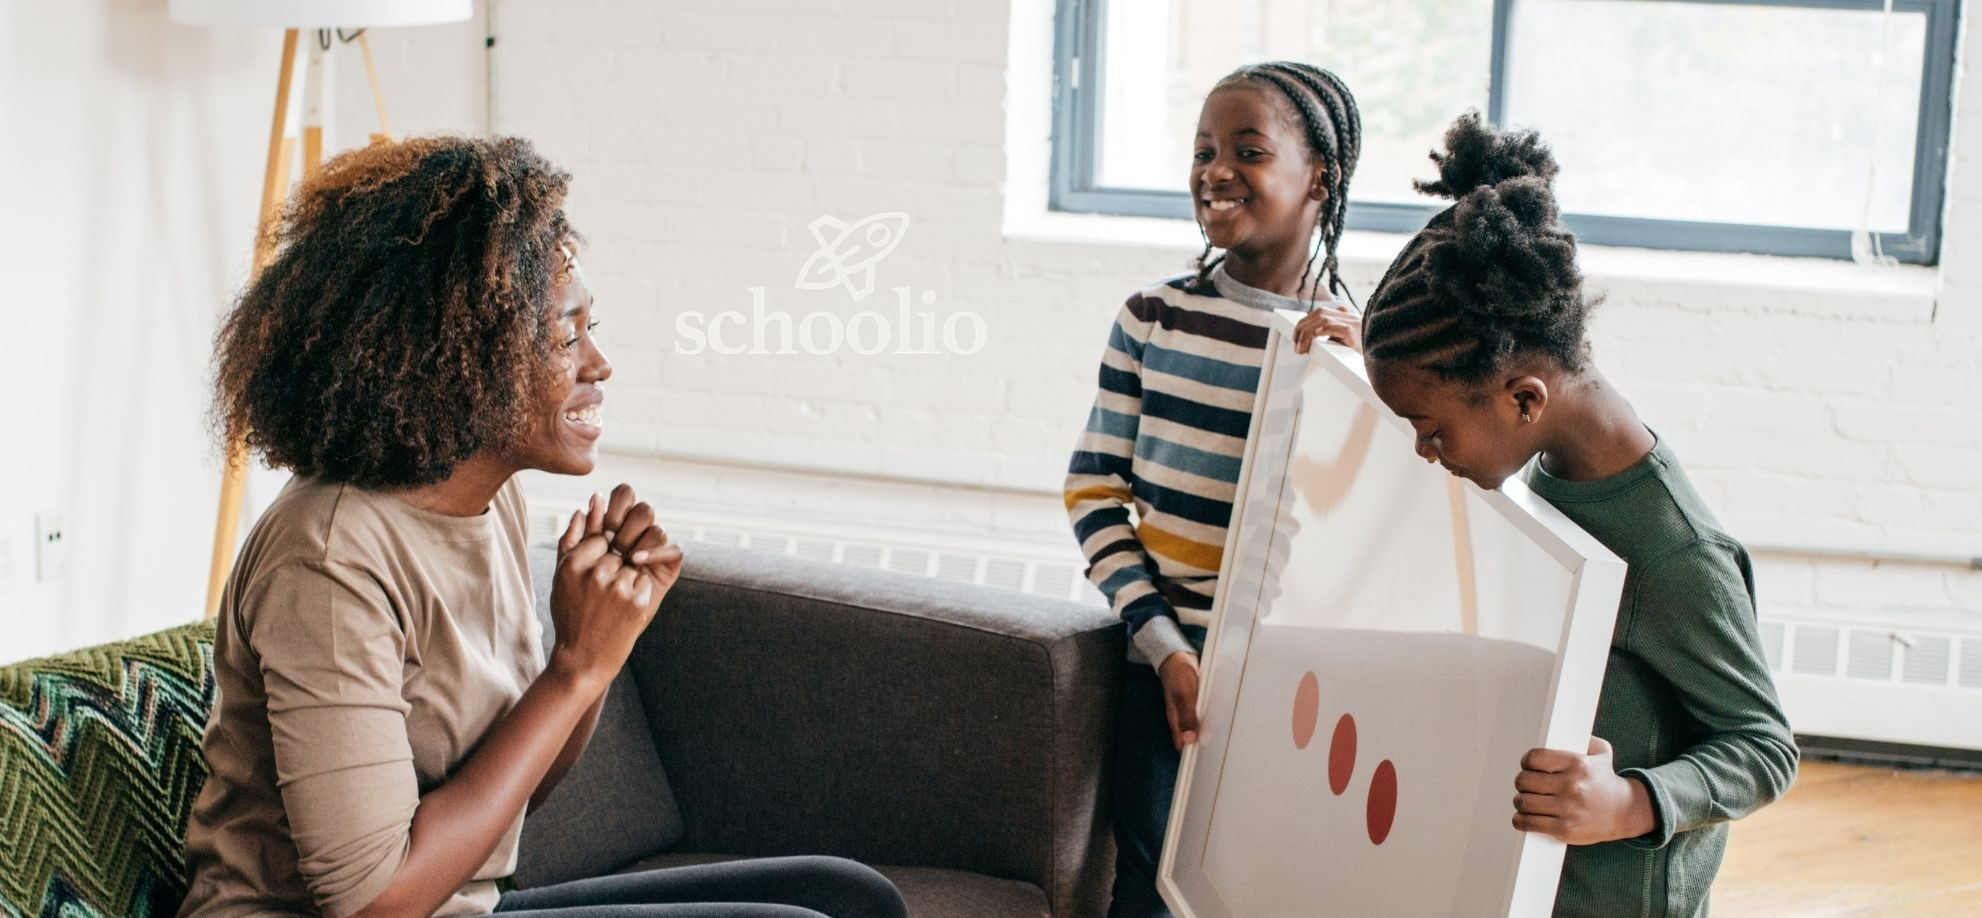 Schoolio homeschooling support for parents